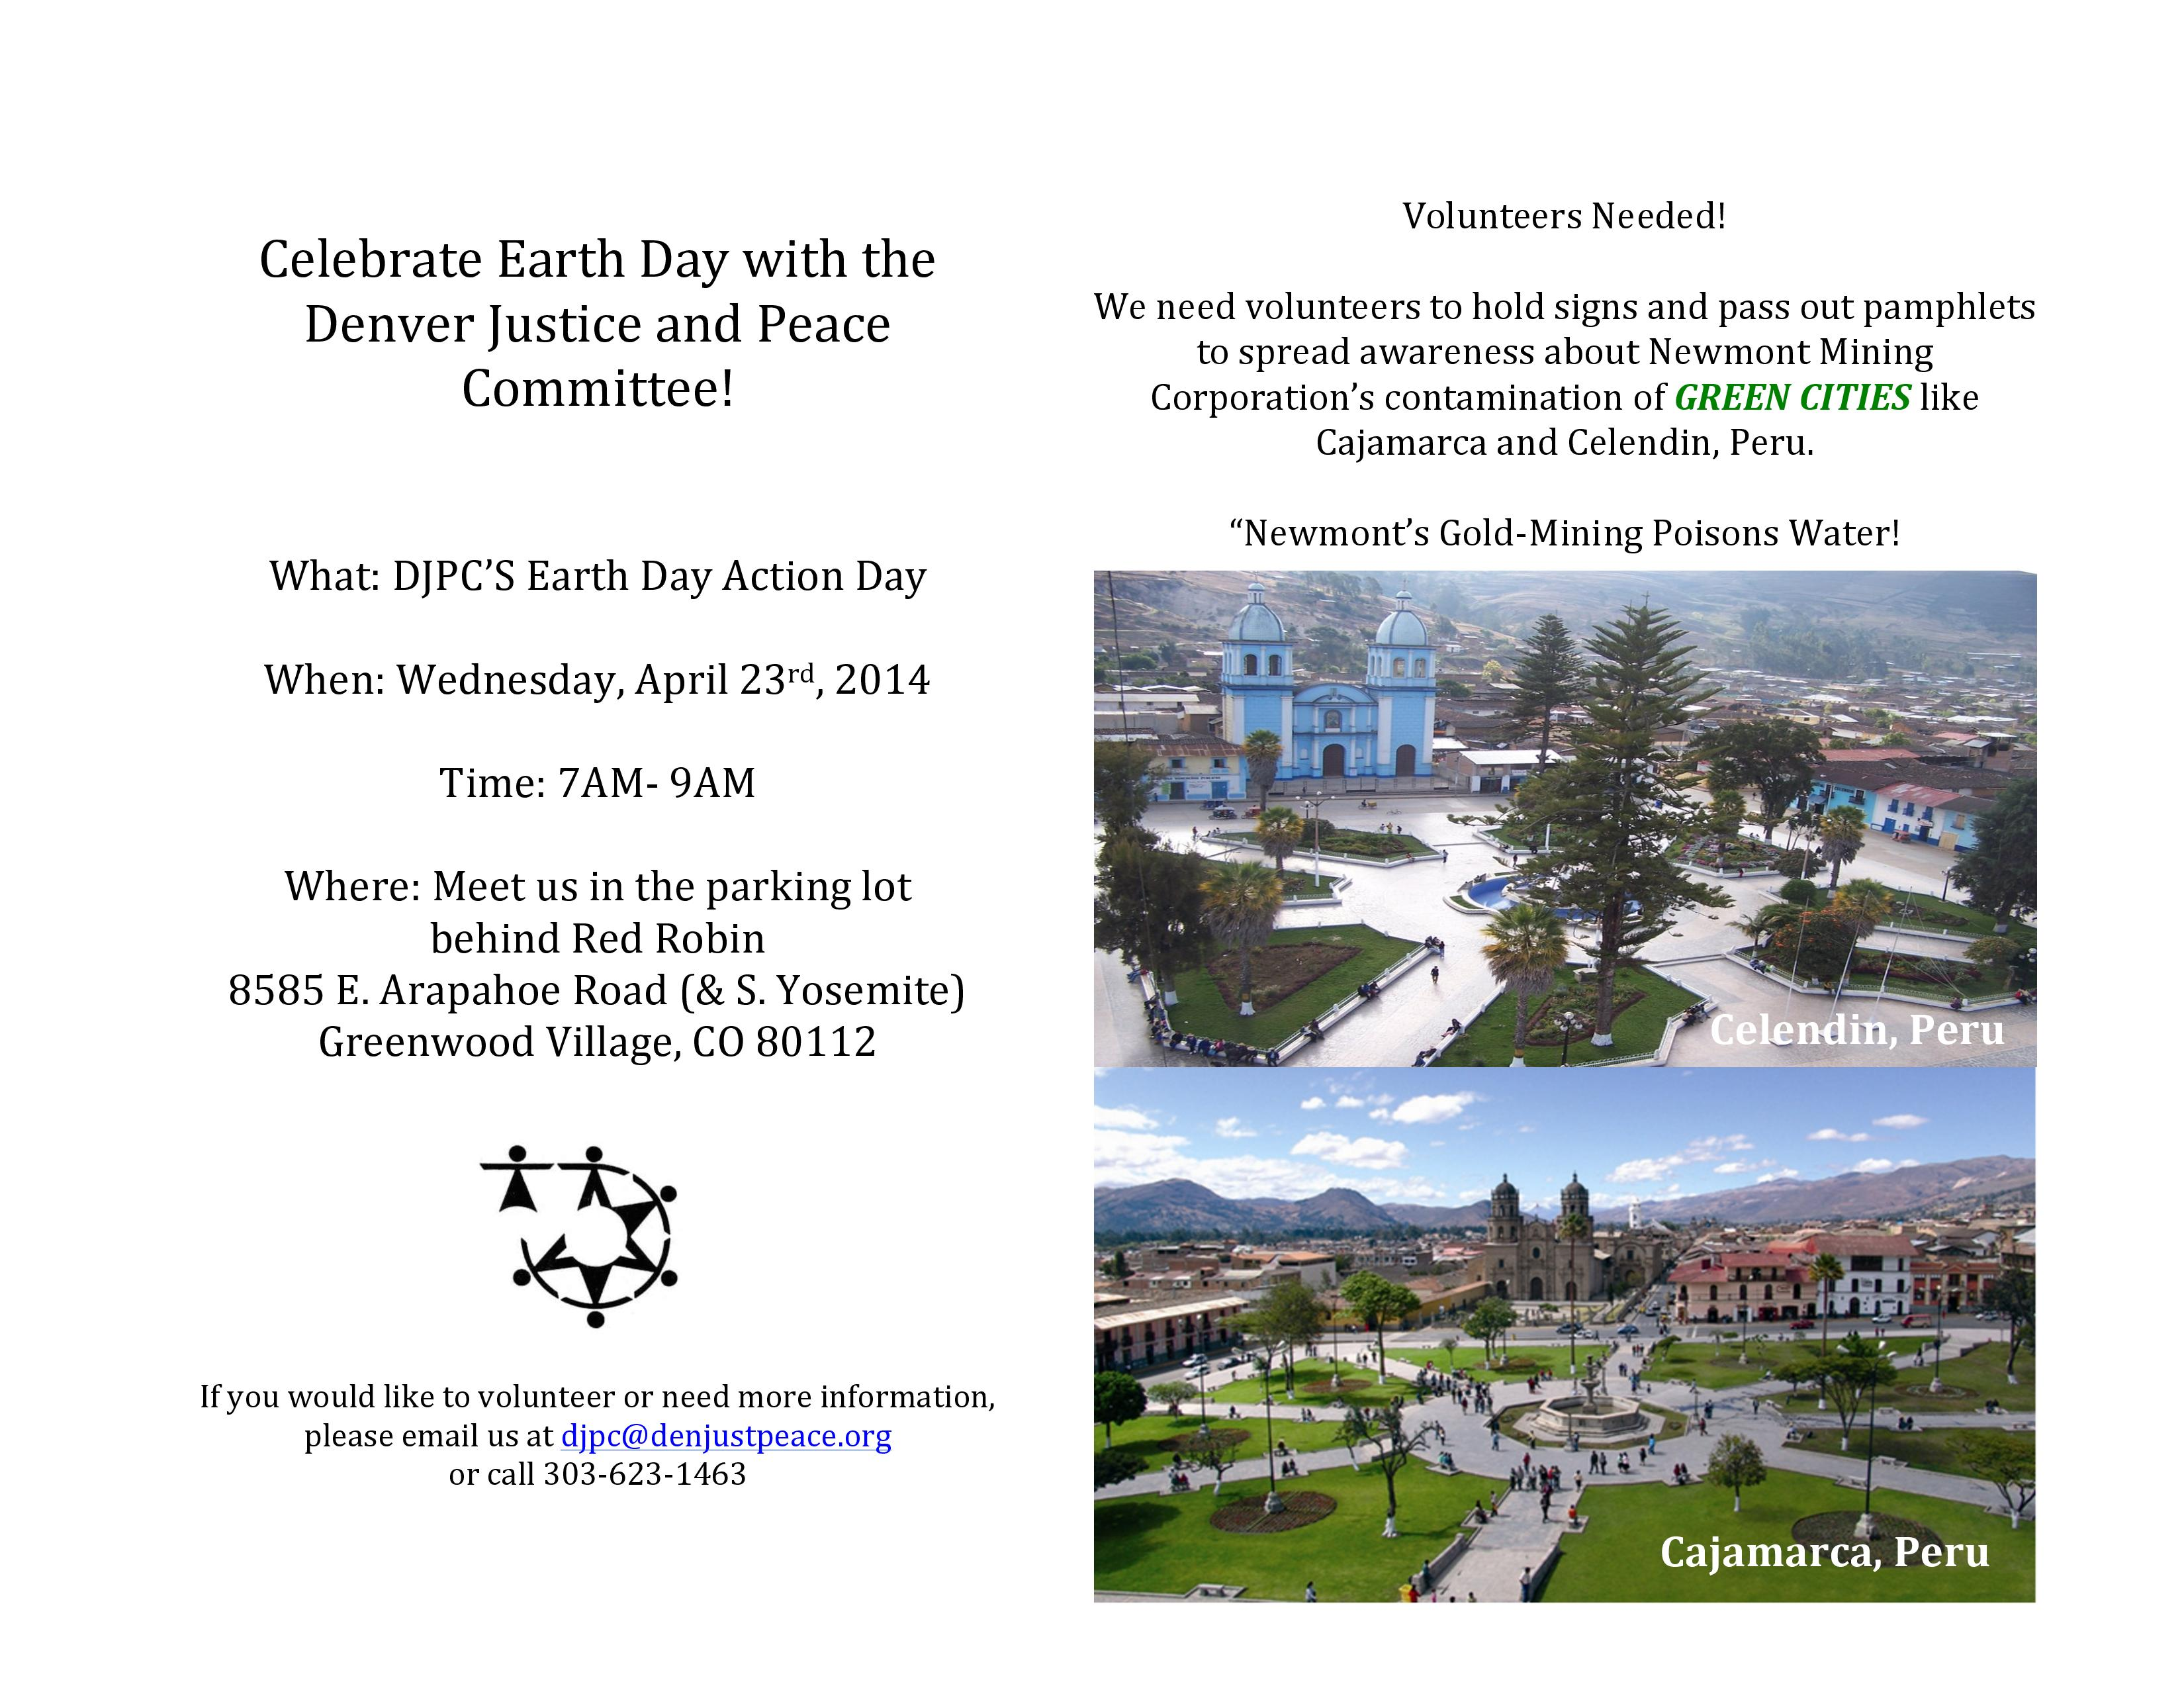 DJPC's Earth Day Action, April 23rd